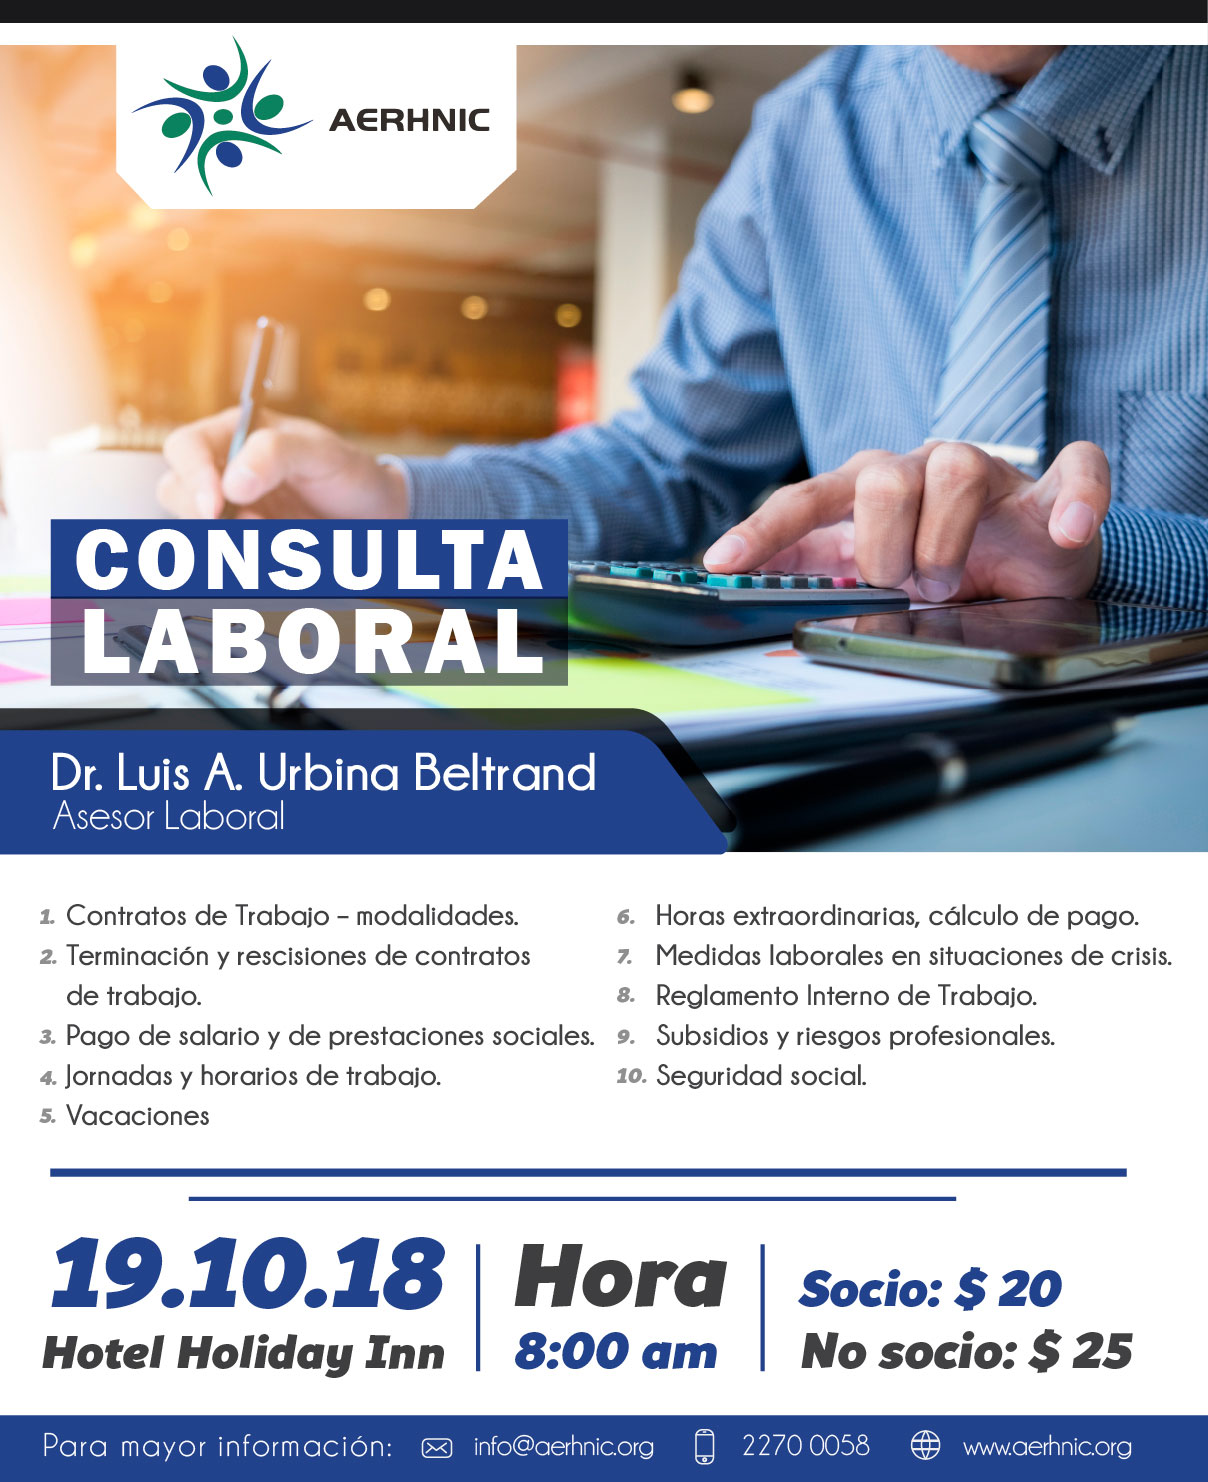 Consulta Laboral Holiday Inn